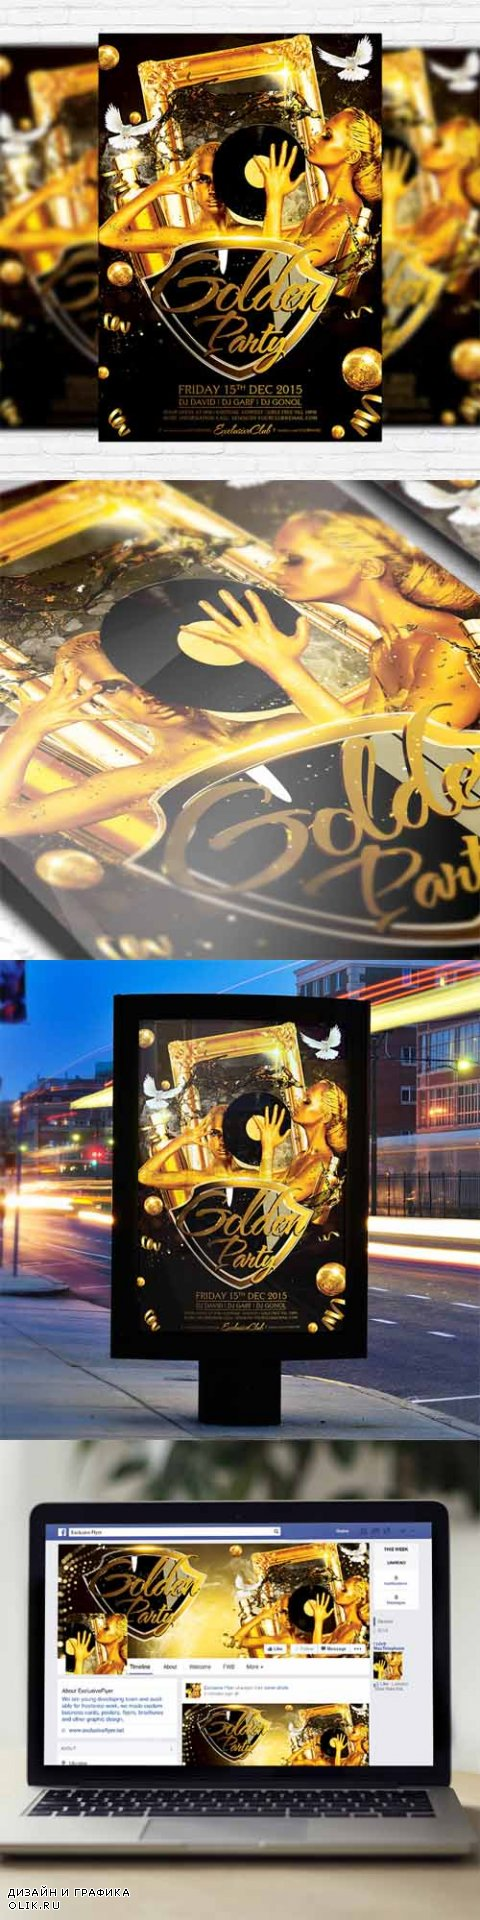 Flyer Template - Golden Party + Facebook Cover